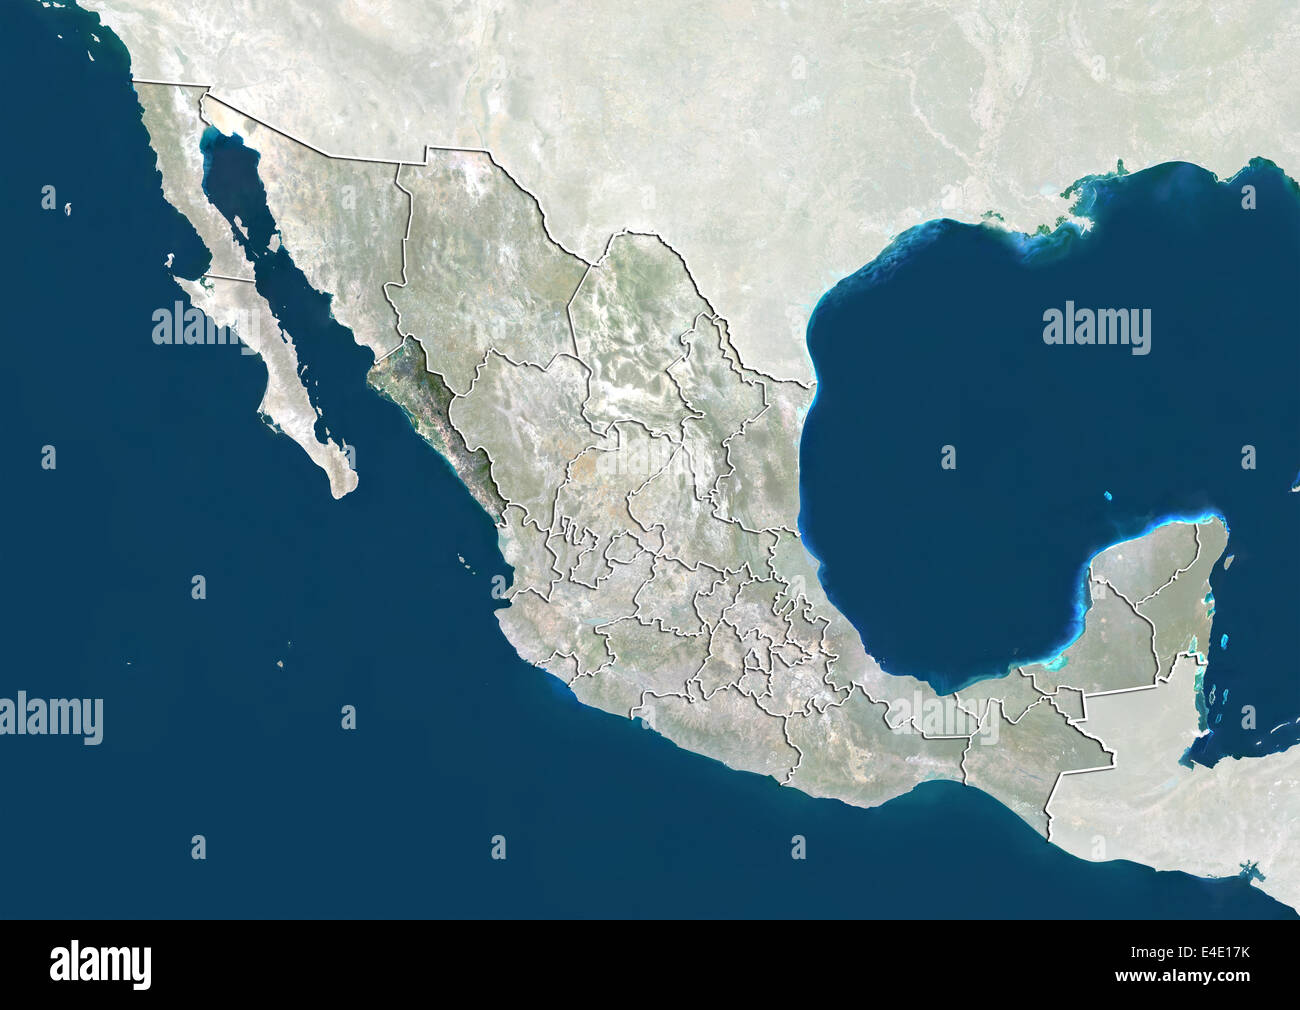 Culiacan Sinaloa Mexico Map.Culiacan Rosales Stock Photos Culiacan Rosales Stock Images Alamy